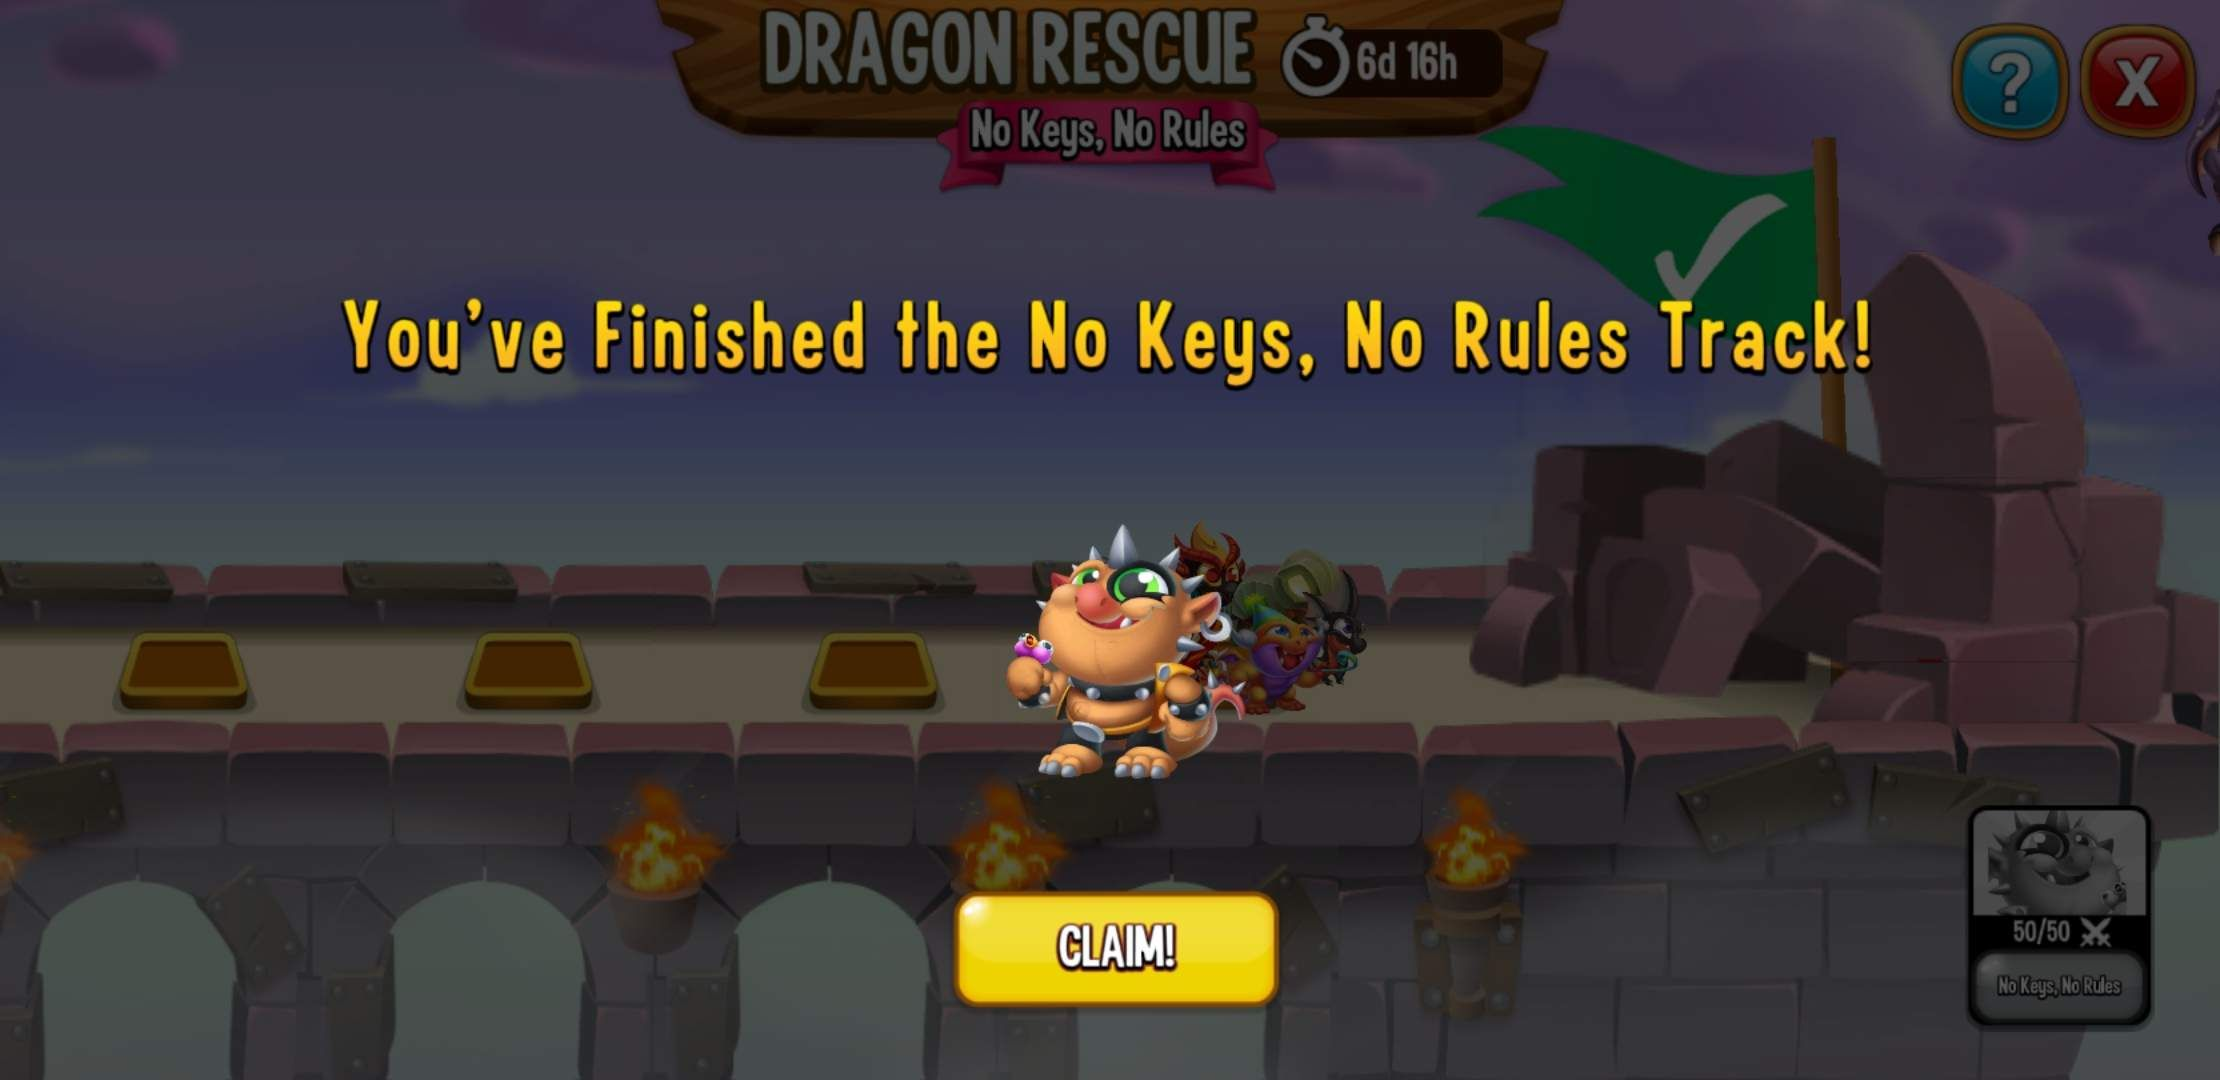 0_1581447980304_021120 no key rescue.jpg